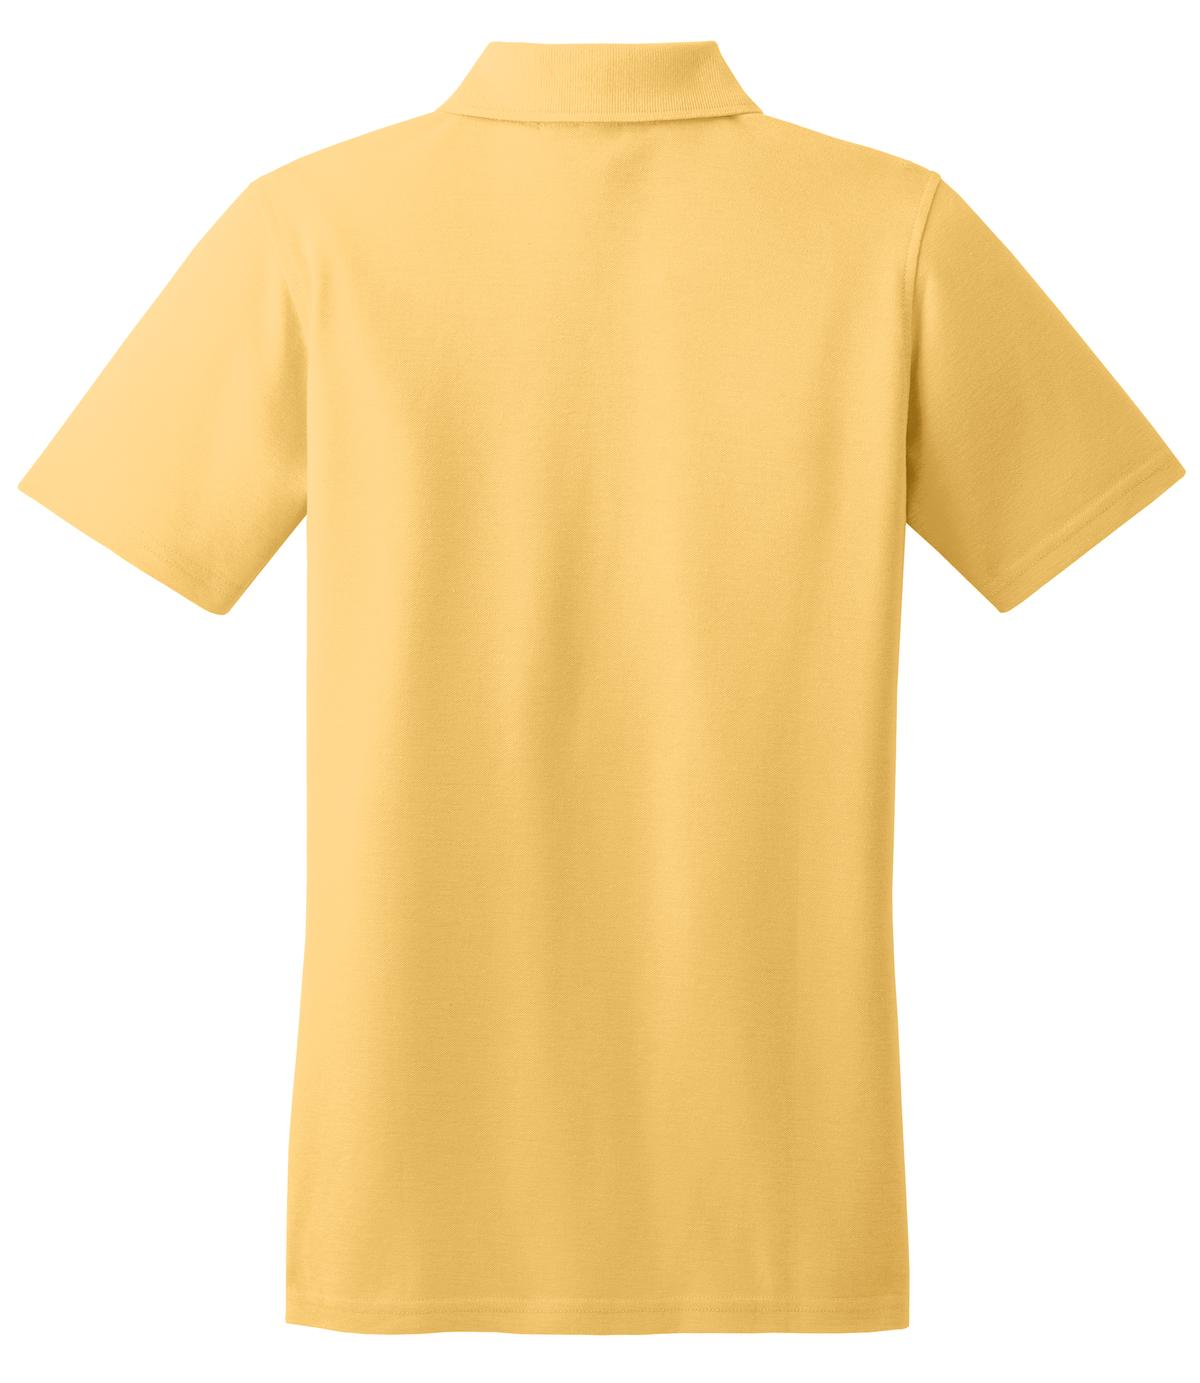 Mafoose Women's Stain Resistant Polo Shirt Banana-Back